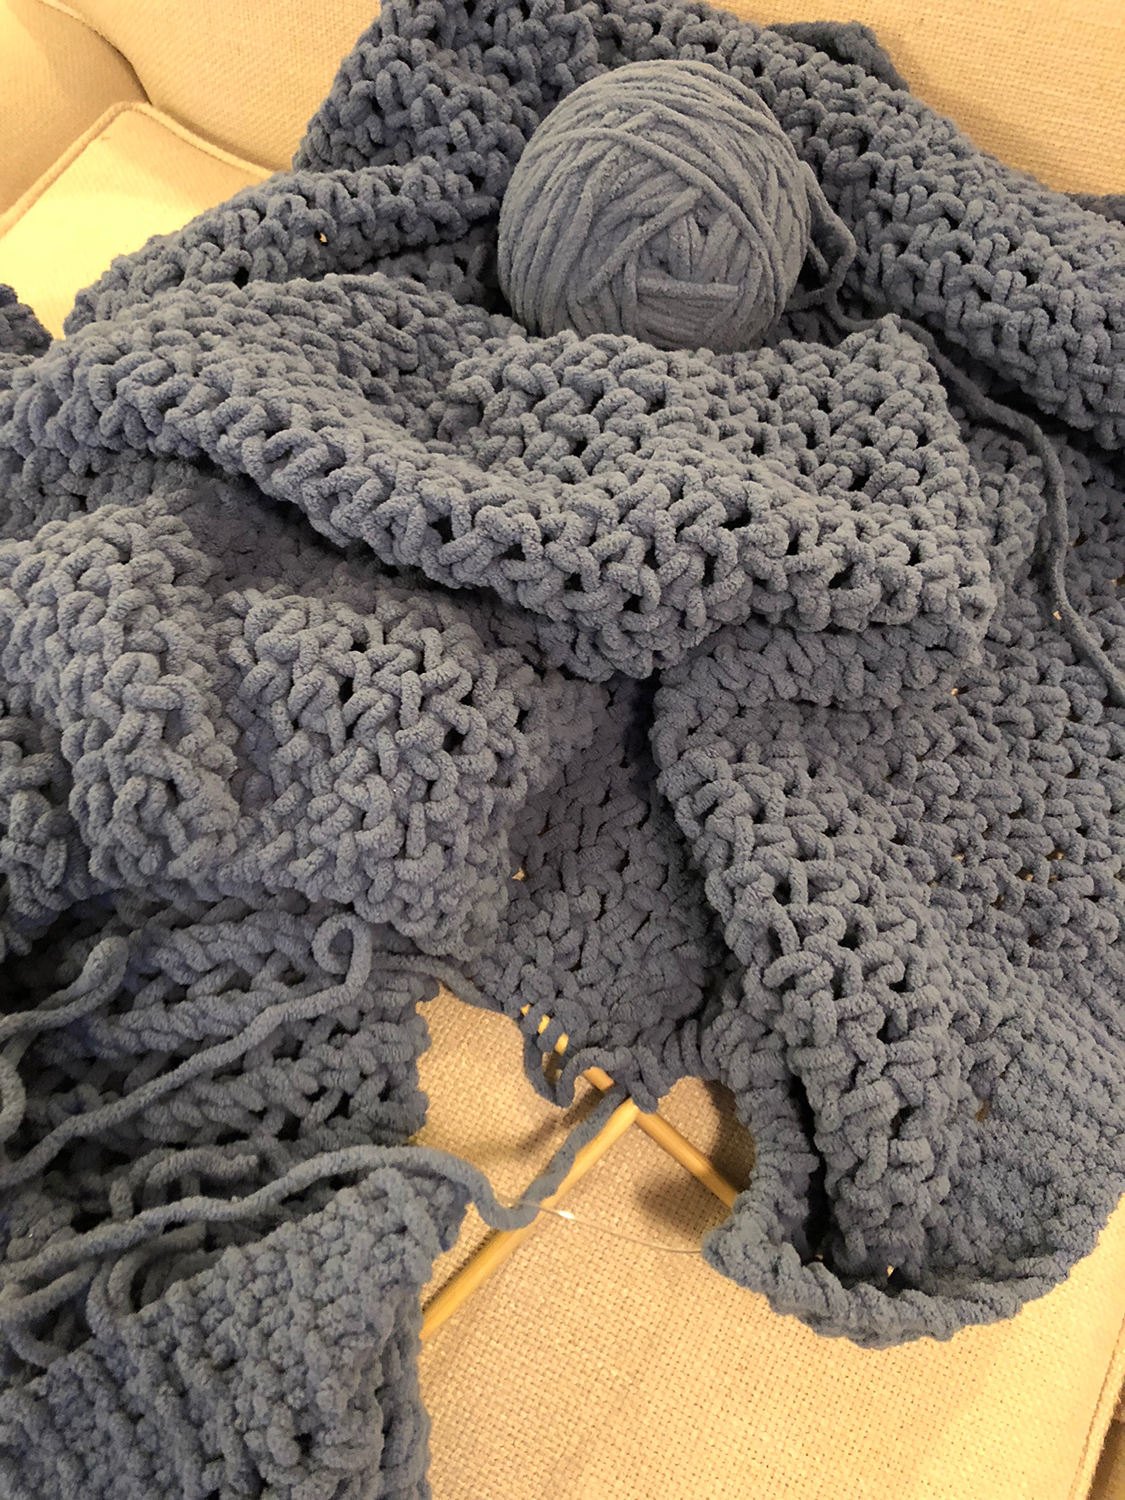 Chunky yarn hand knitted throw with knitting needles